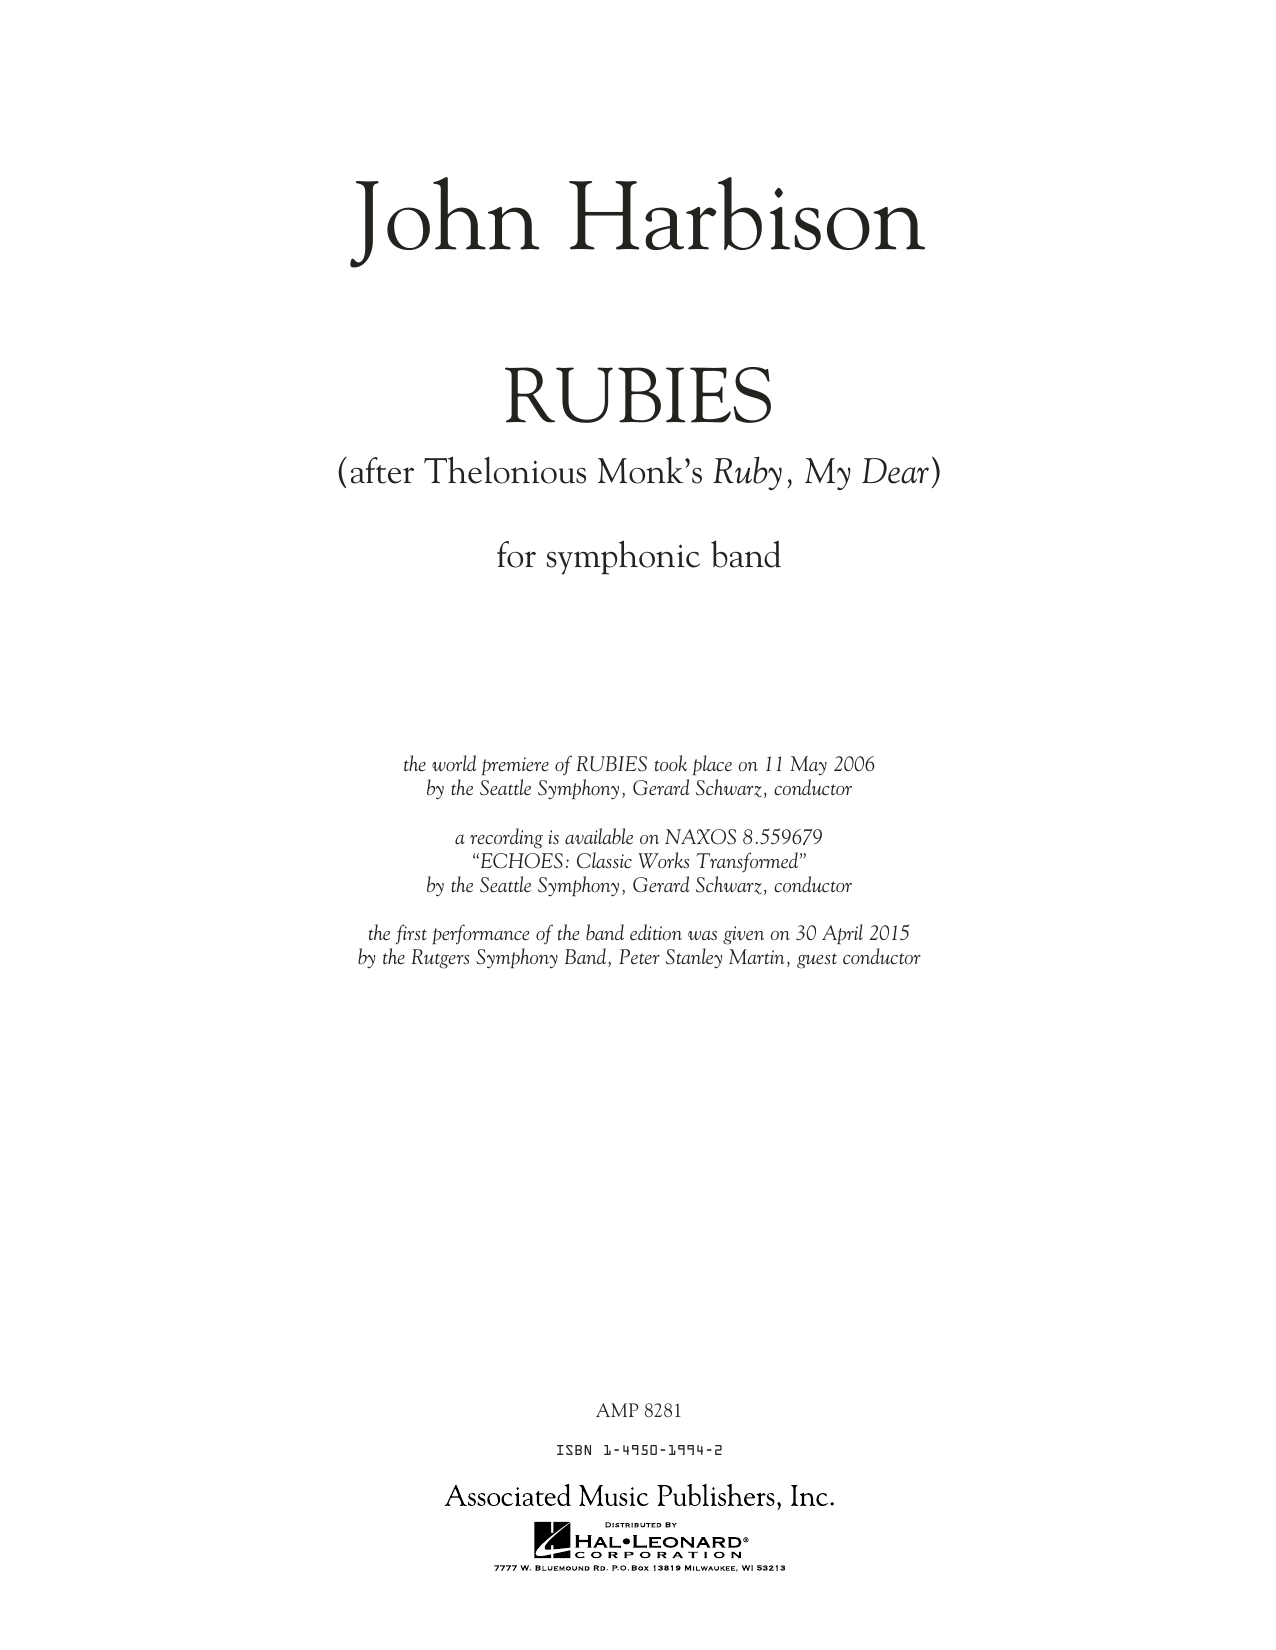 Rubies (After Thelonious Monk's